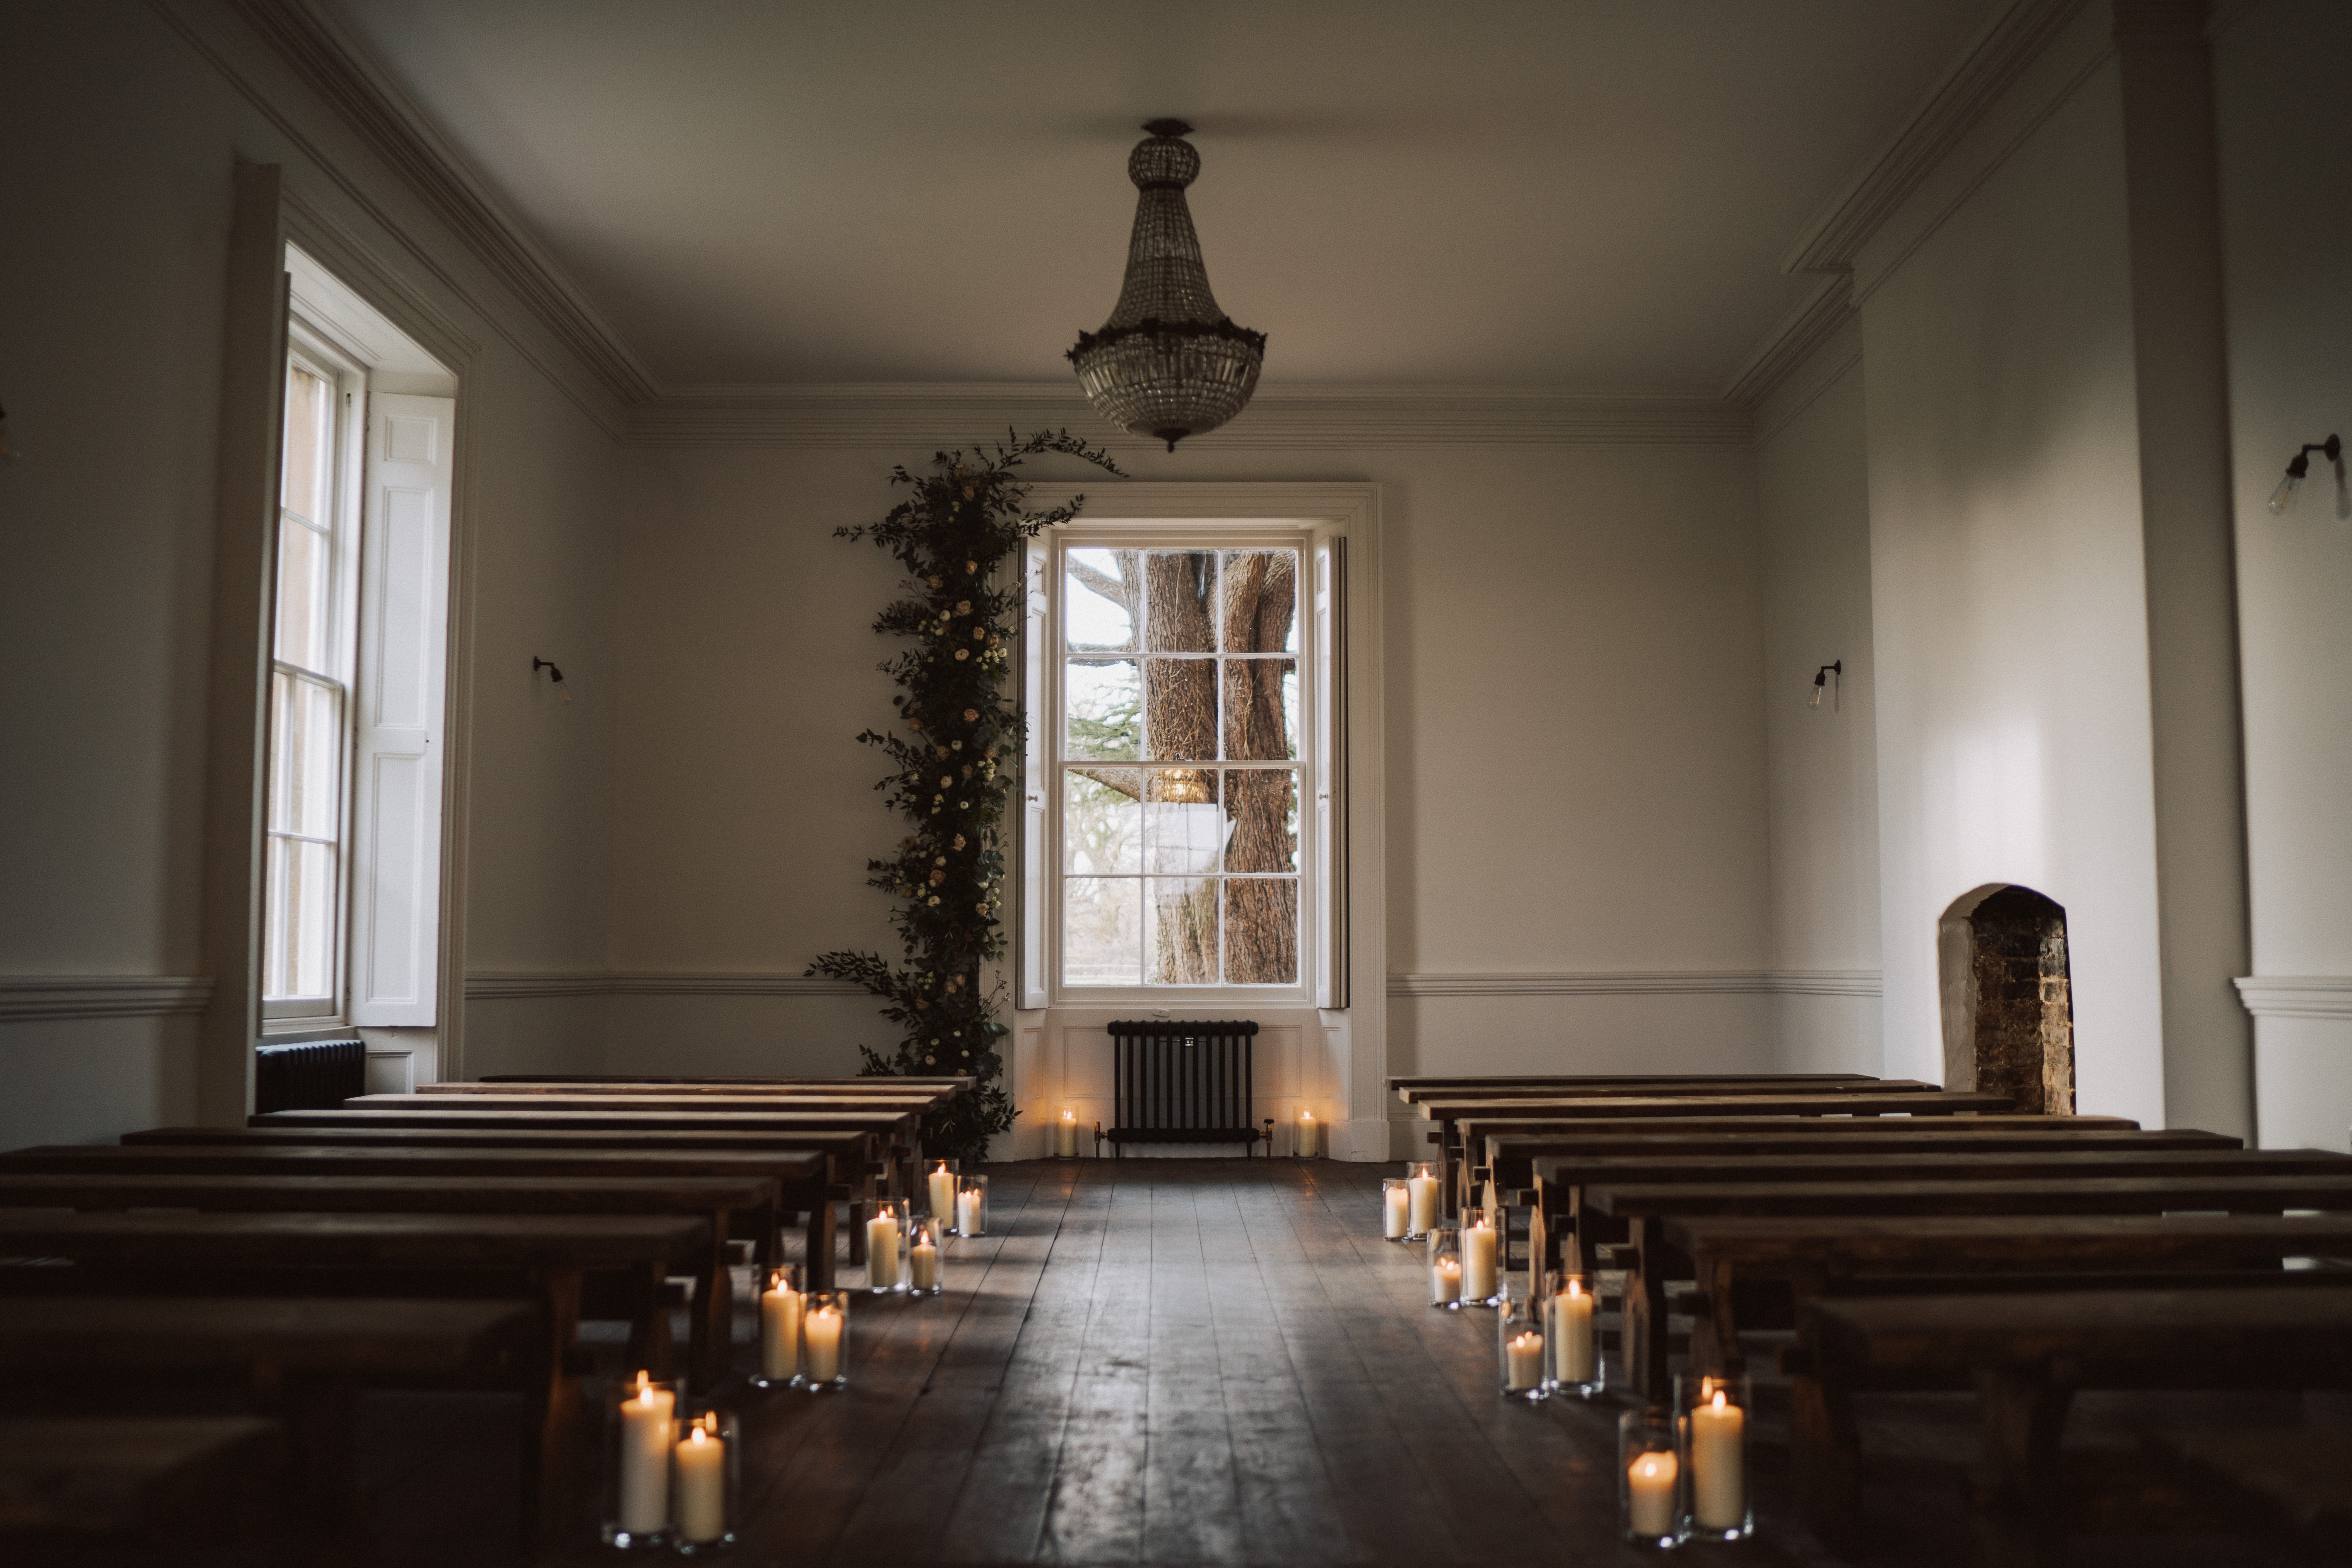 Candlelit Ceremony - Winter Wedding Aswarby Rectory